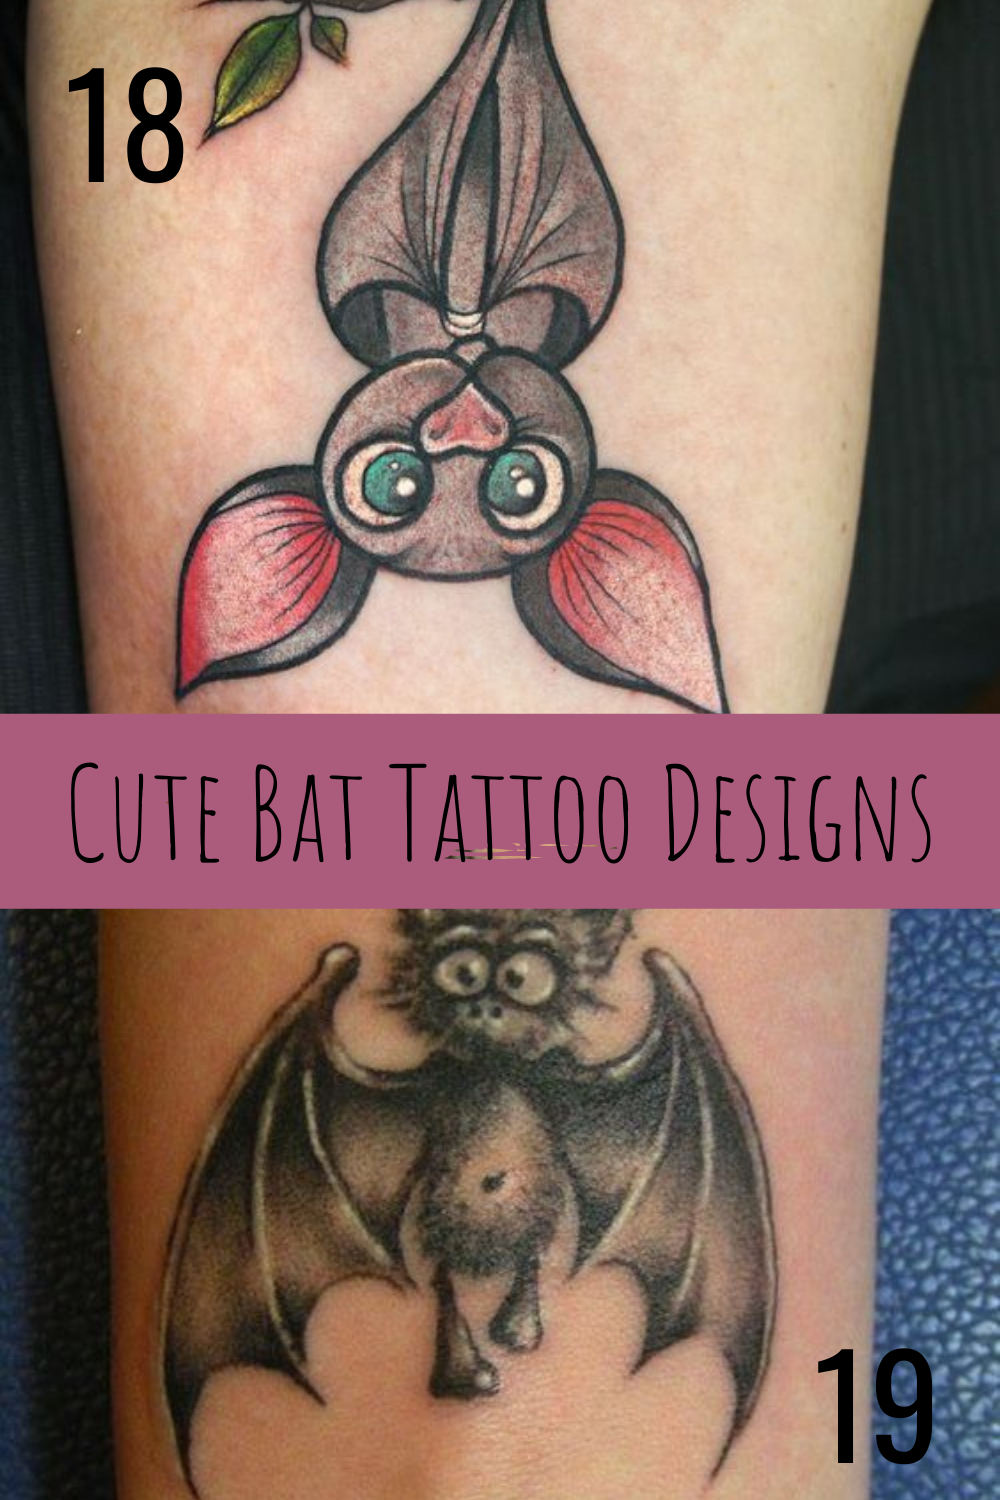 Cute Bat Tattoos